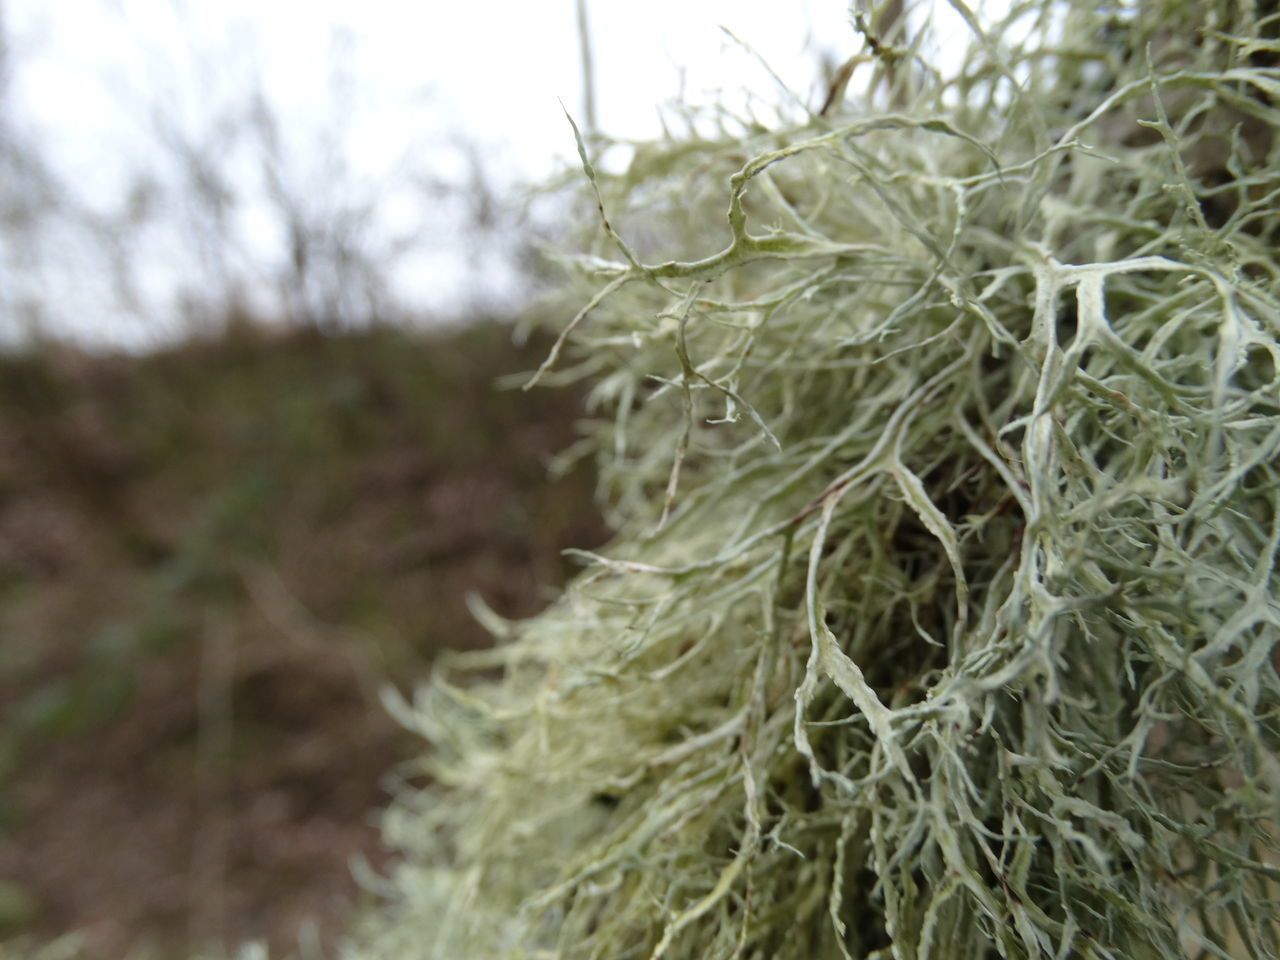 Close-up Growth Lichen Macro Photography Moss Nature No People Outdoors